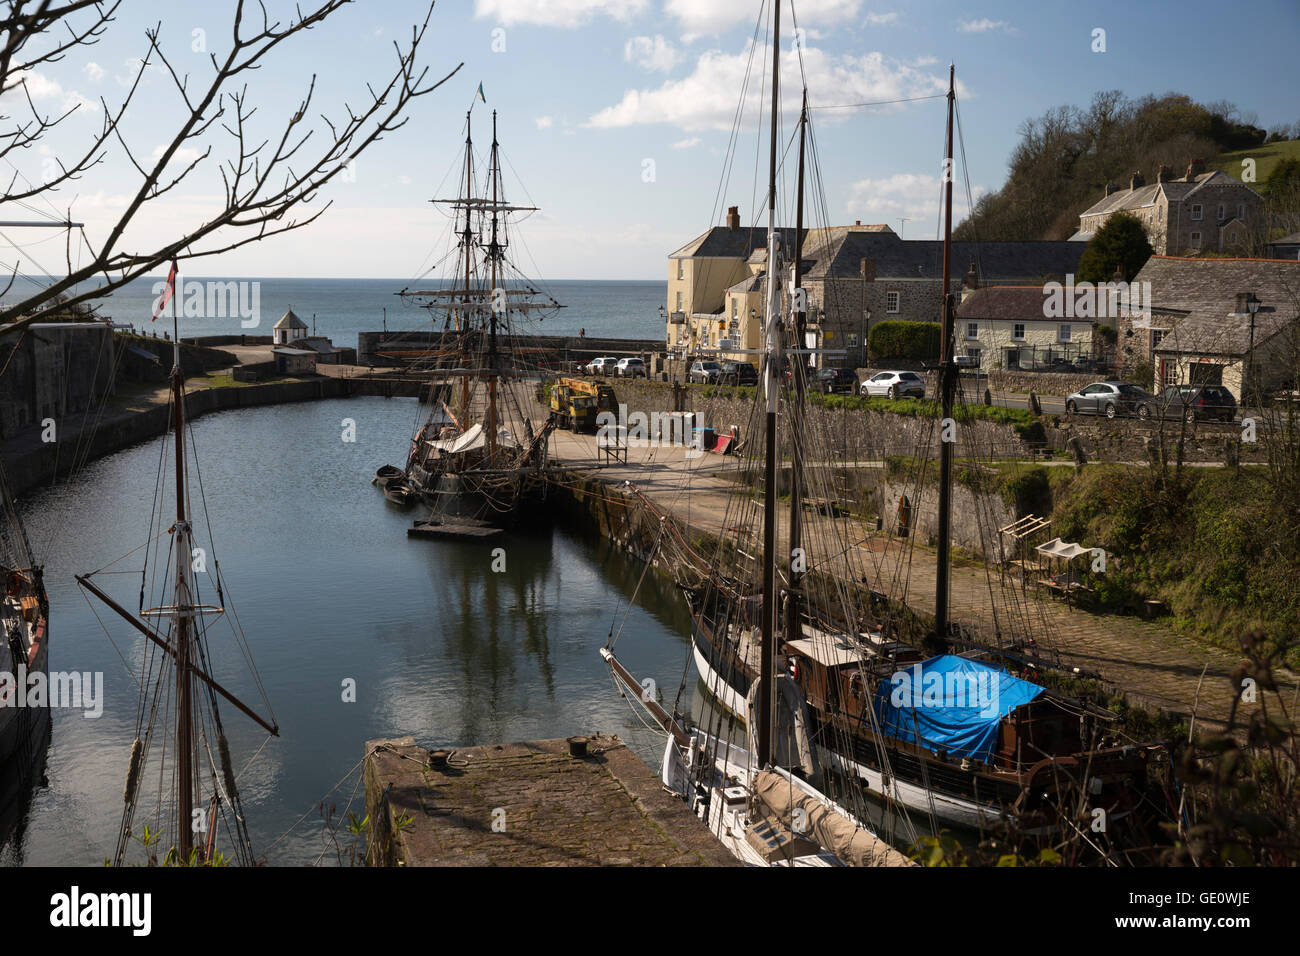 Tall ships in historic harbour, Charlestown, near St Austell, Cornwall, England, United Kingdom, Europe - Stock Image